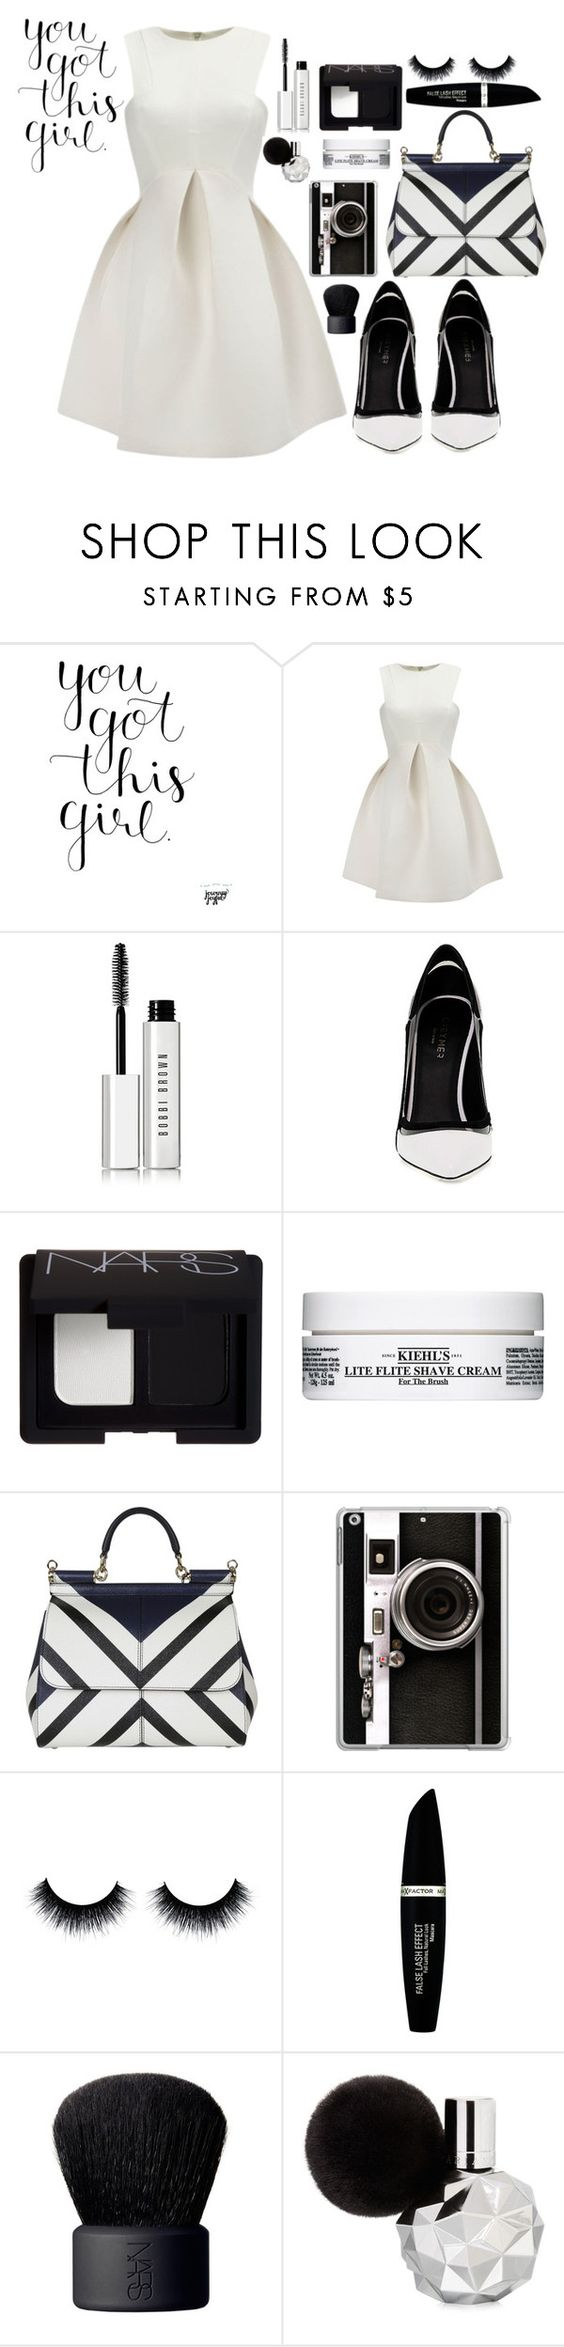 """""""Untitled #209"""" by luxurylust-x ❤ liked on Polyvore featuring WithChic, Bobbi Brown Cosmetics, Greymer, NARS Cosmetics, Kiehl's, Dolce&Gabbana, Casetify and Max Factor"""